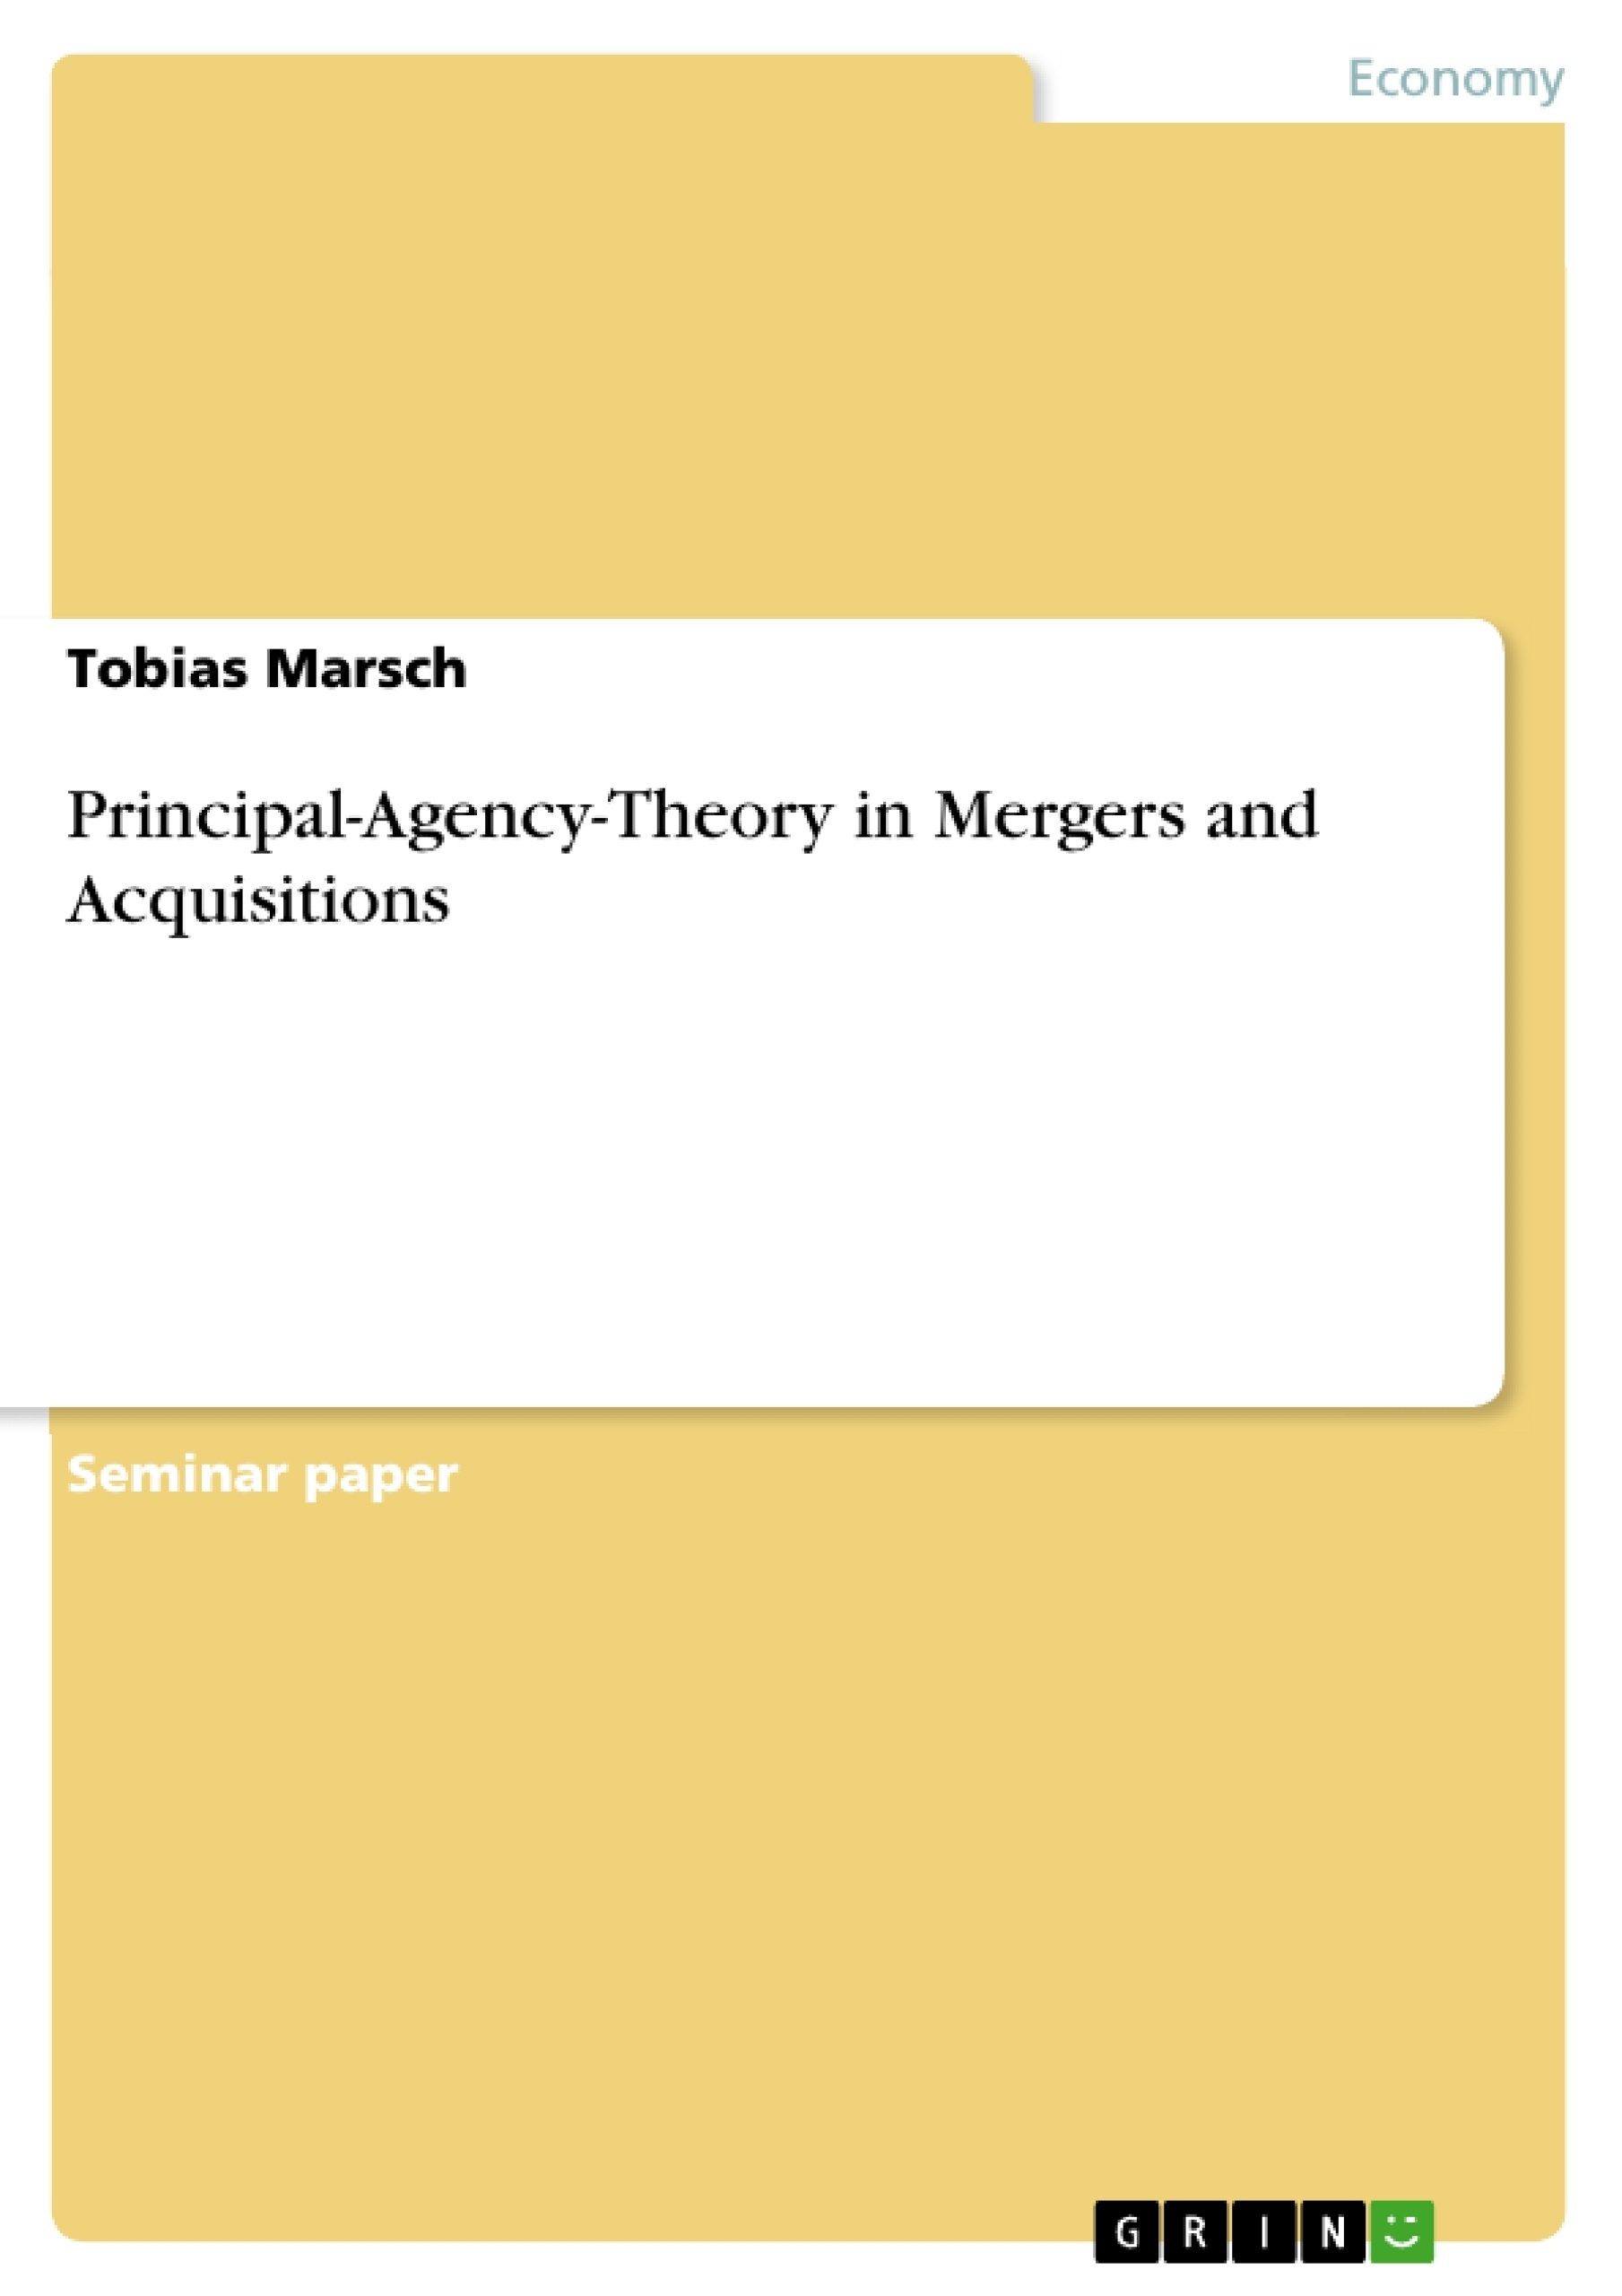 bachelor thesis mergers and acquisitions